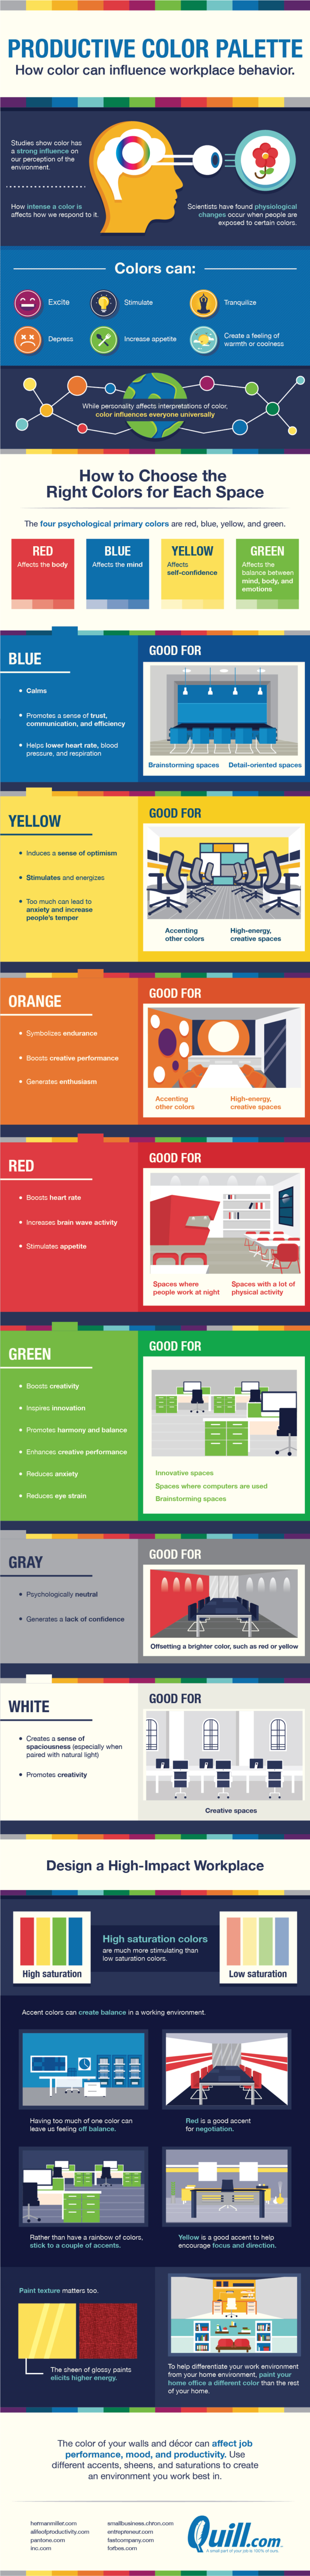 Productive Palette: How Color Can Set Your Office Up For Success ...